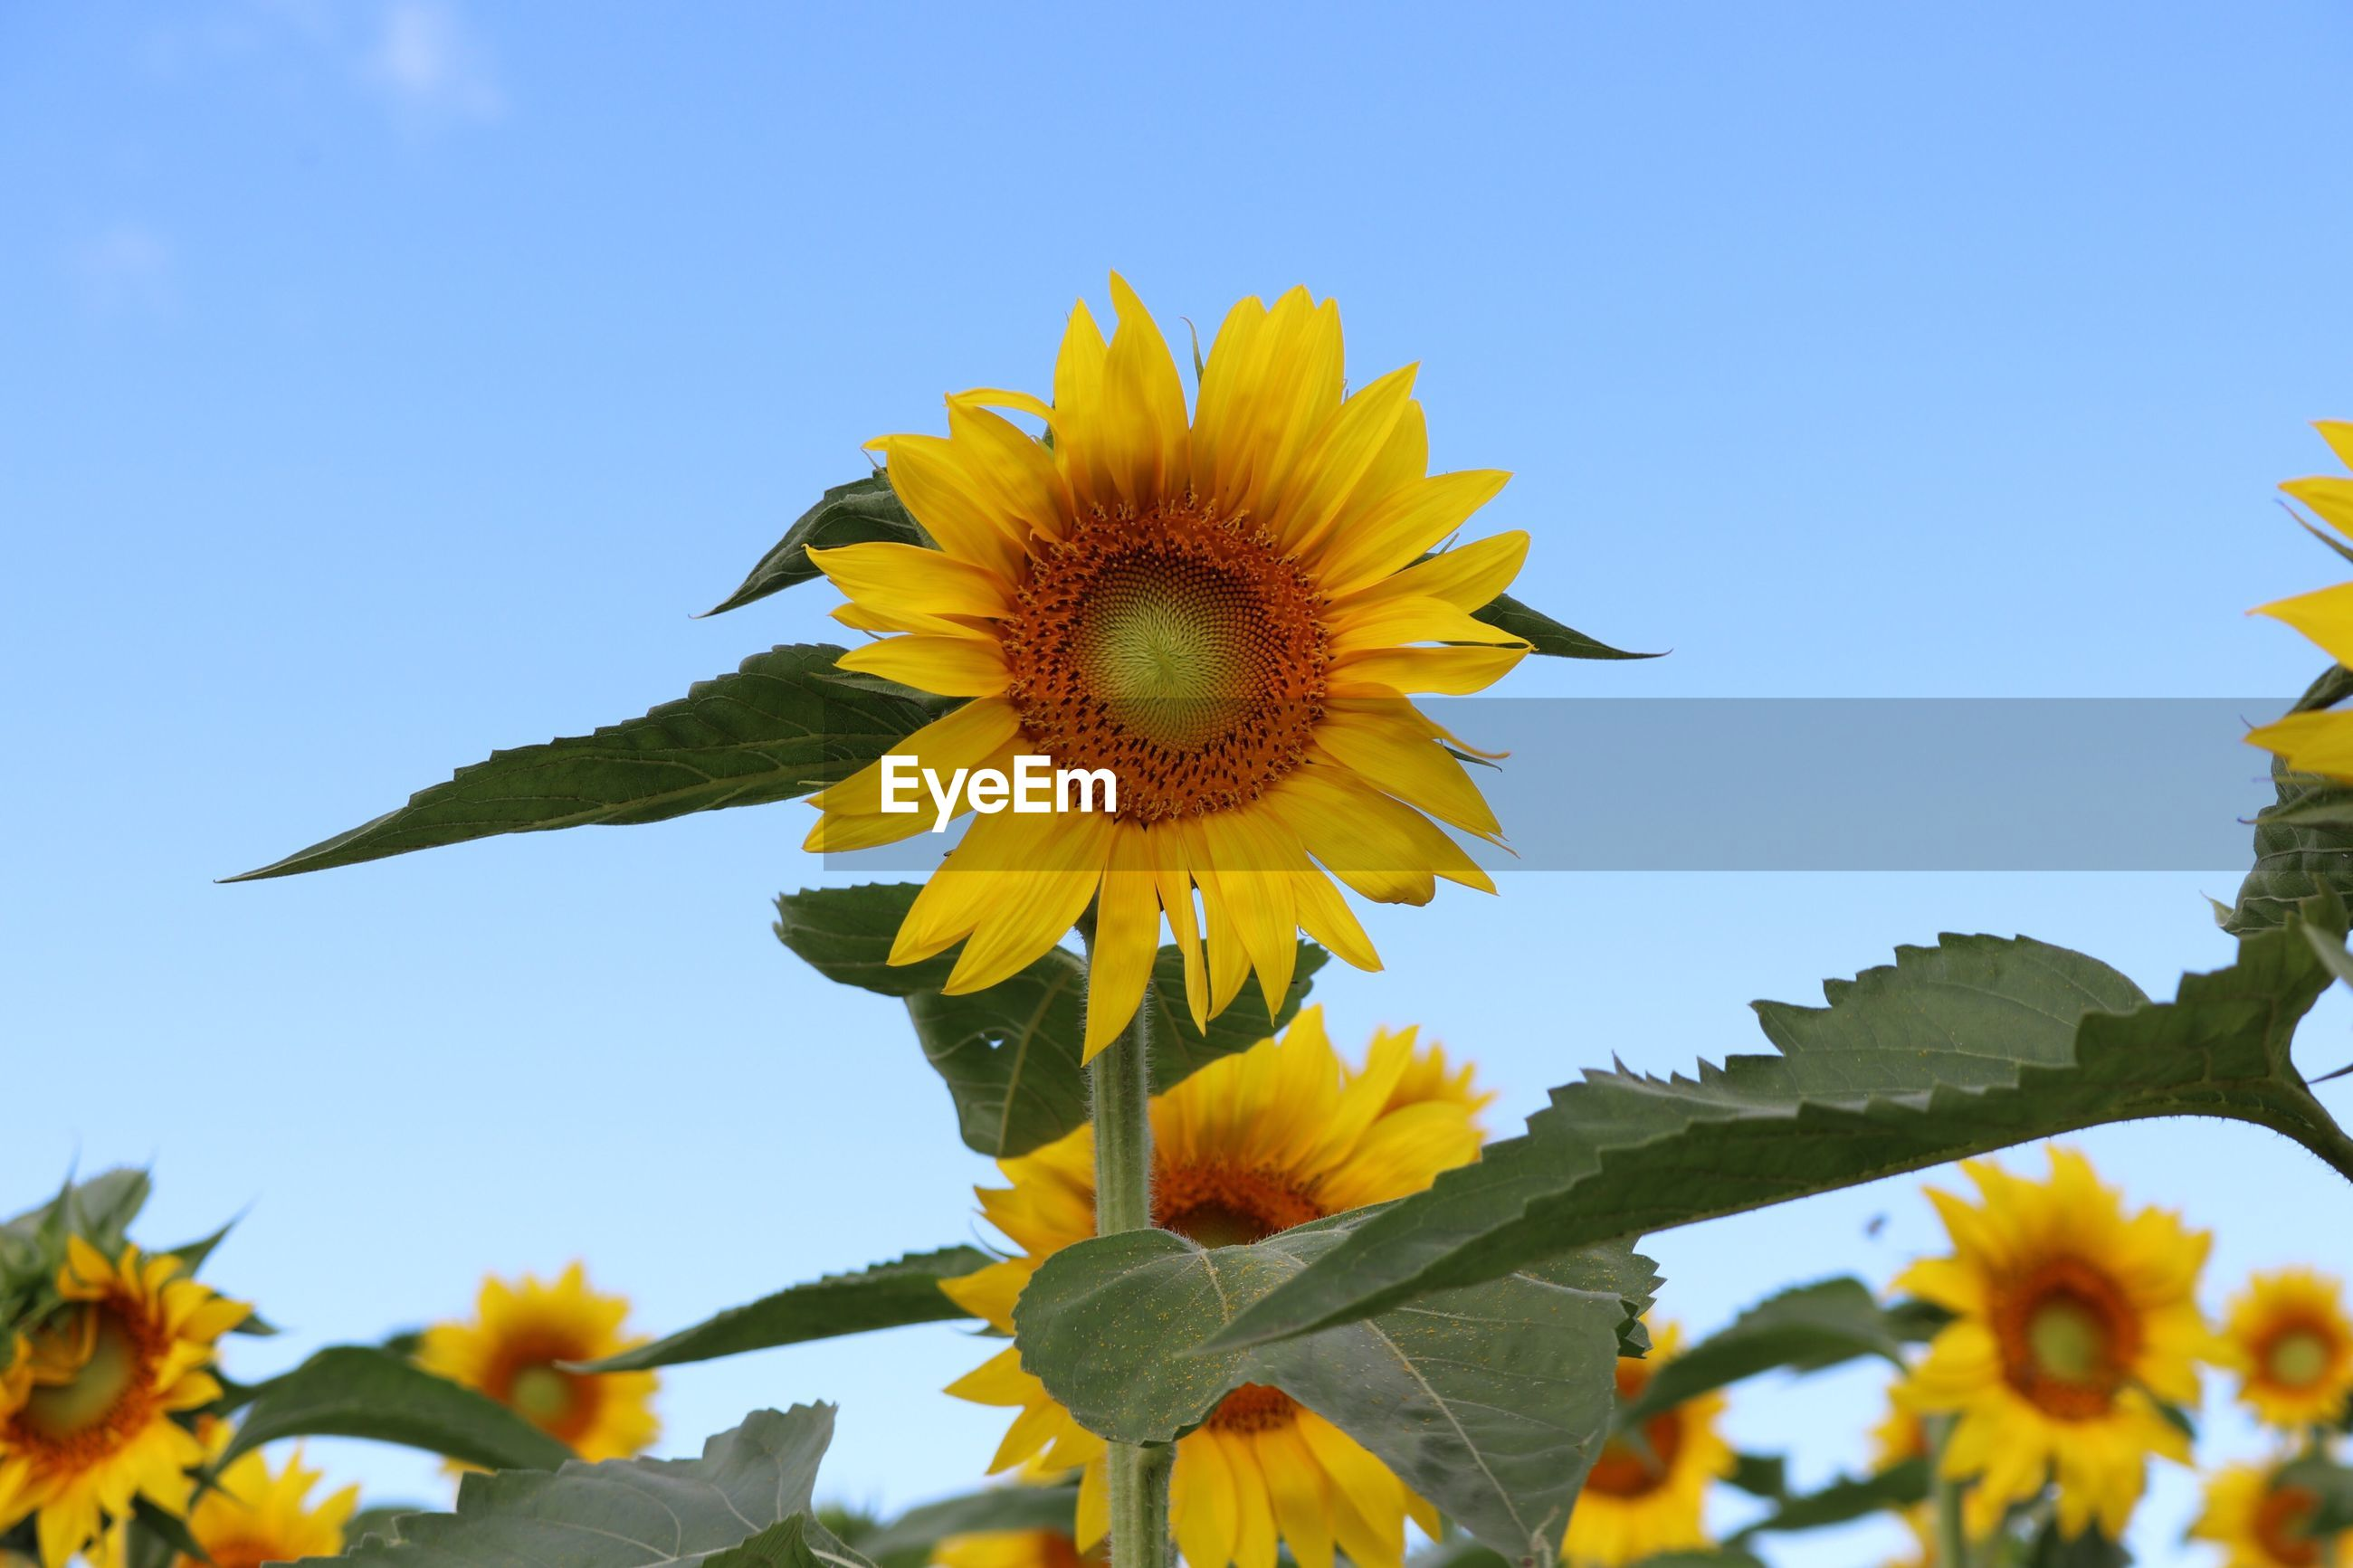 LOW ANGLE VIEW OF SUNFLOWERS BLOOMING IN PARK AGAINST SKY